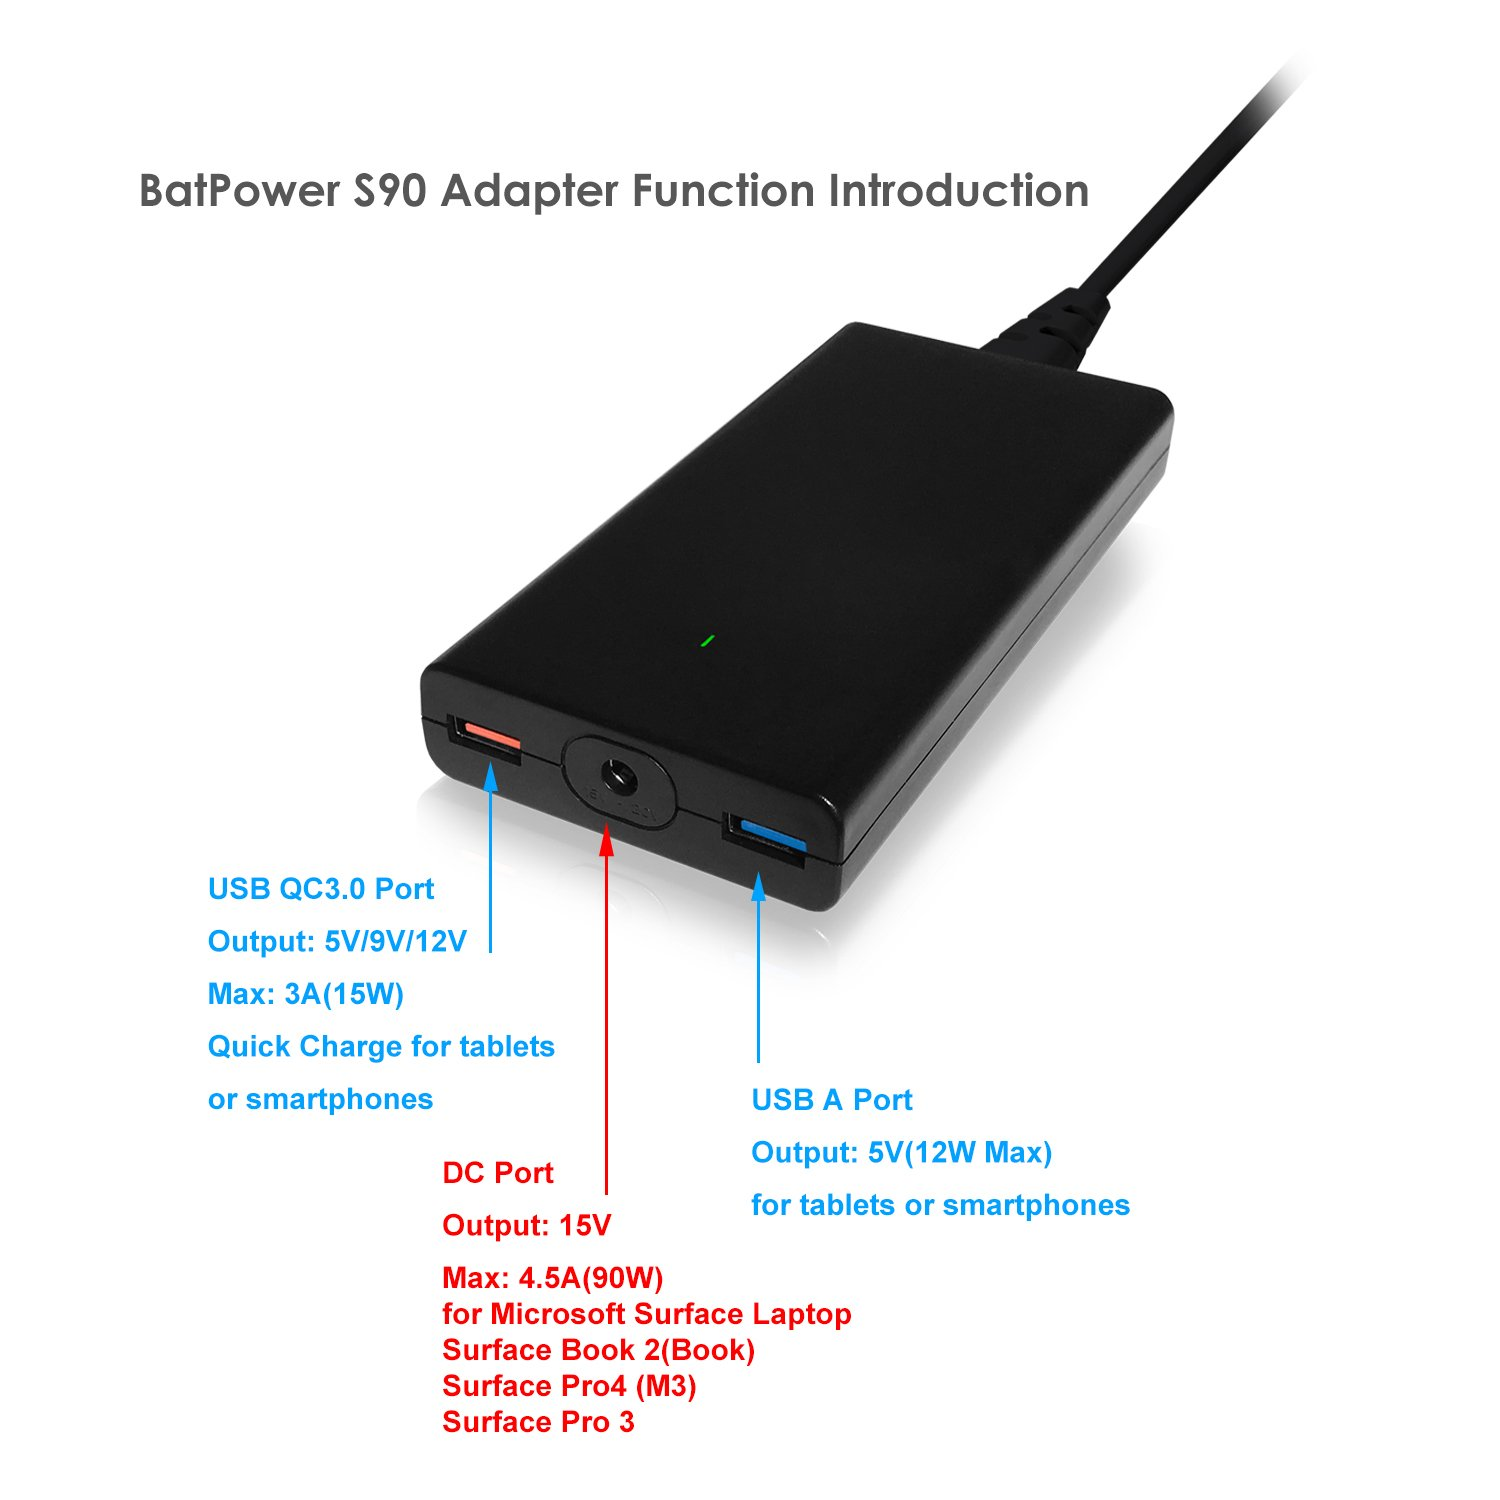 BatPower ProE 2 ES10 Portable Charger External Battery Power Bank for Surface Laptop, Surface Book, Book 2, Surface Pro 4 / 3 / 2 and RT, USB QC 3.0 Fast Charging for Tablet or Smartphone -148Wh by BatPower (Image #7)